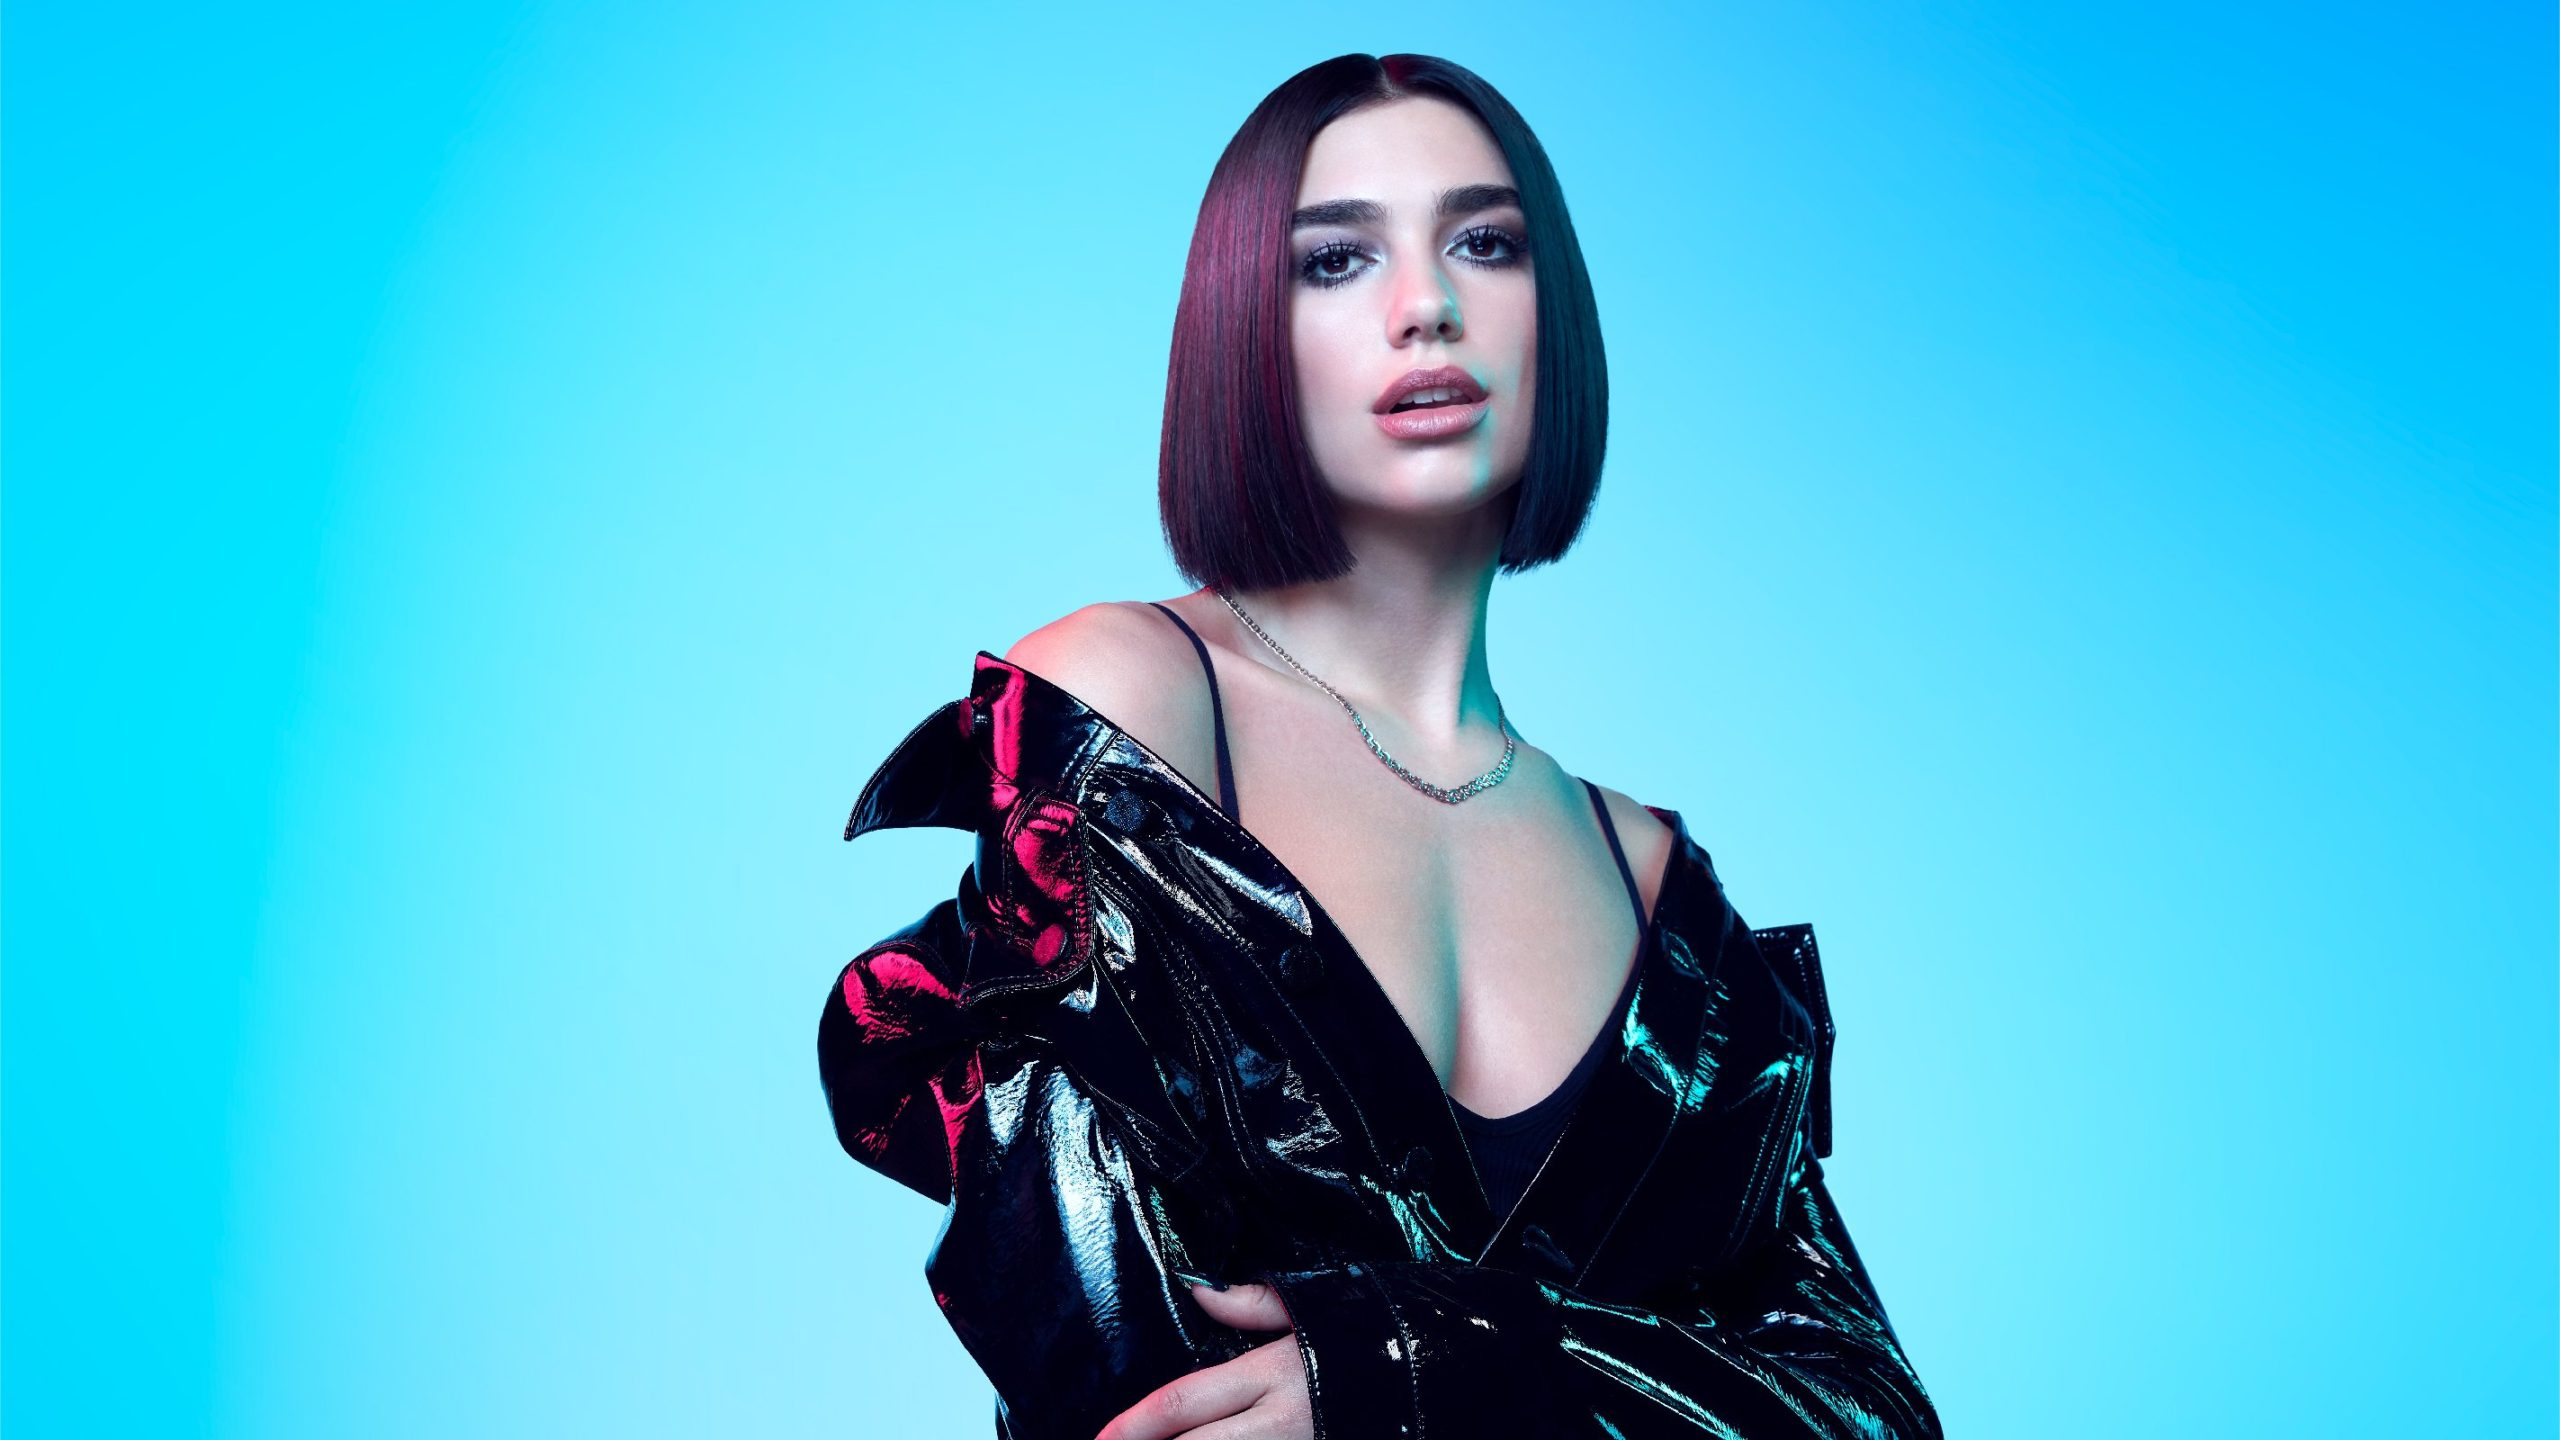 Dua Lipa Wallpaper Hd scaled - Dua Lipa Net Worth, Pics, Wallpapers, Career and Biography